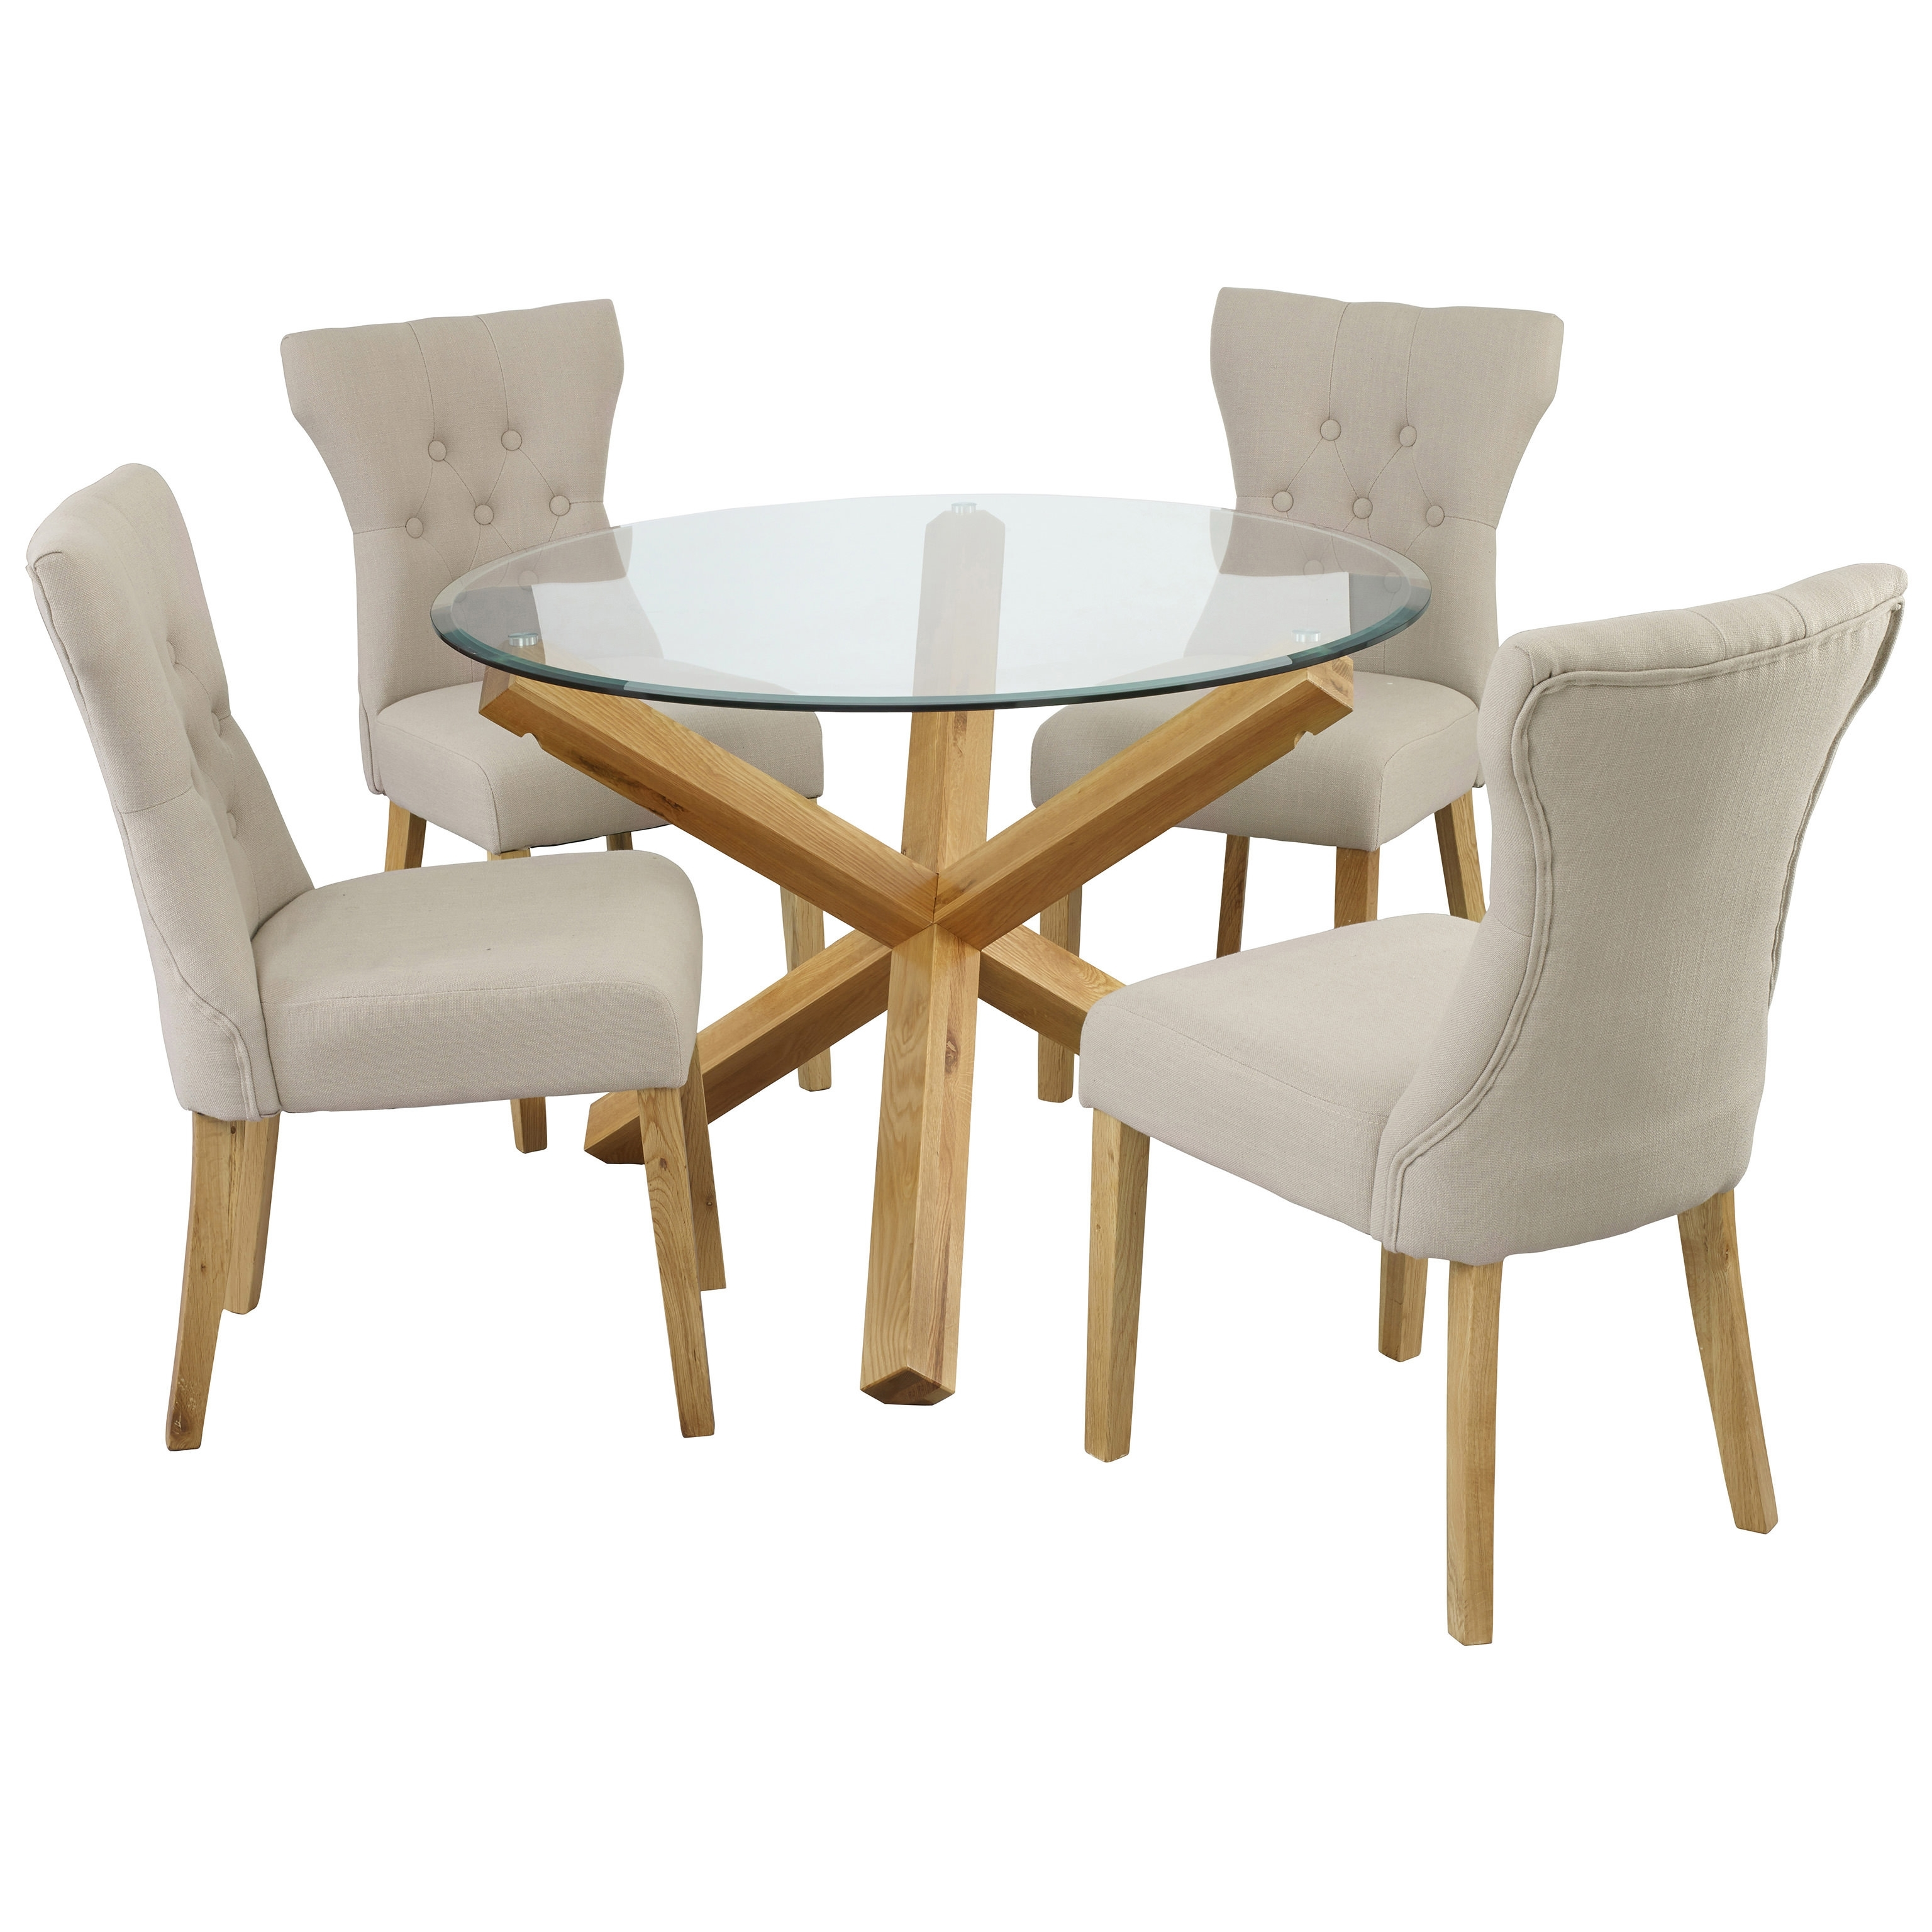 Oak & Glass Round Dining Table And Chair Set With 4 Fabric Seats Throughout Well Known Dining Tables And Fabric Chairs (View 17 of 25)